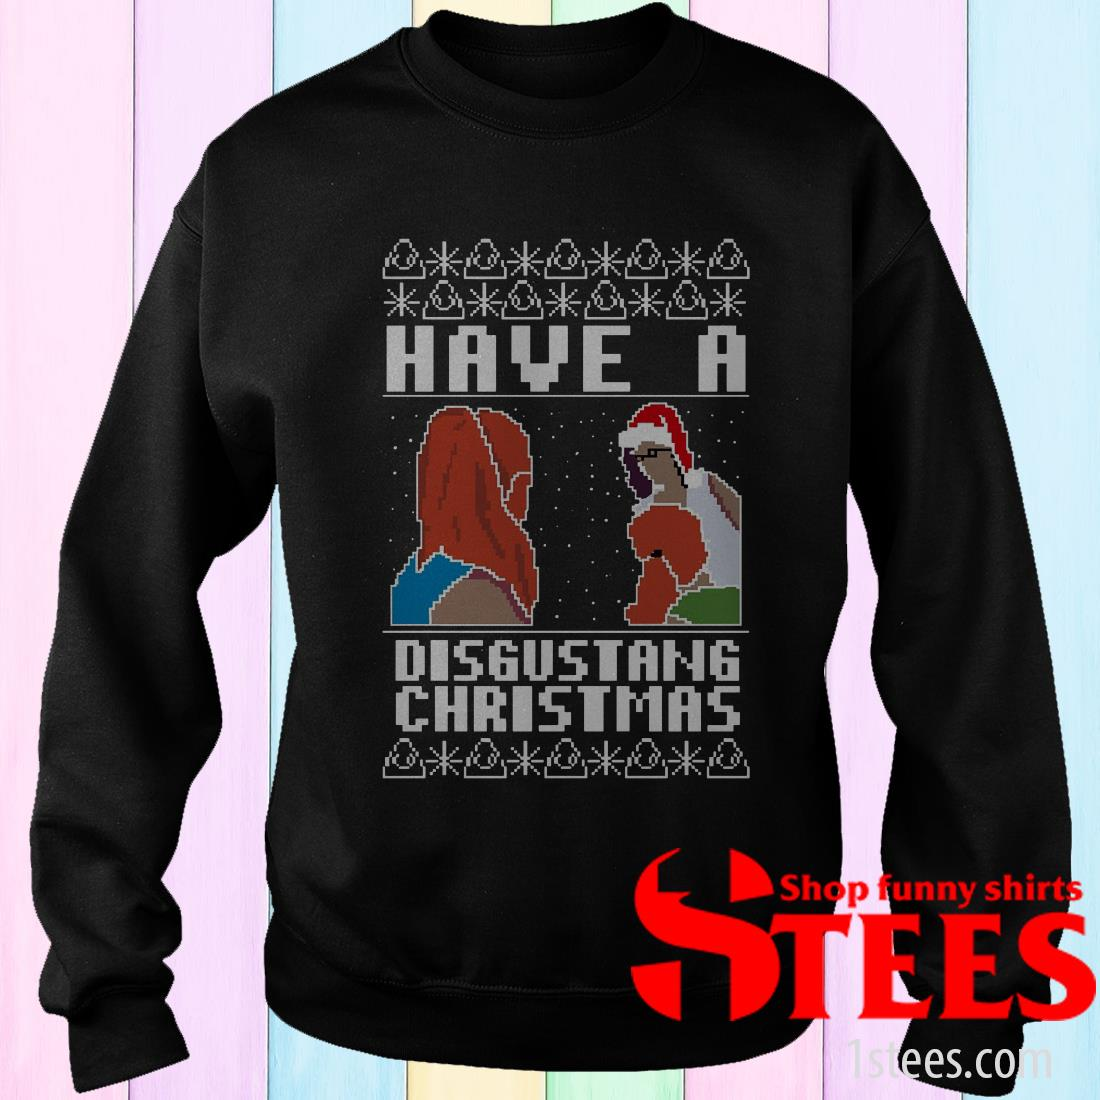 Have A Disgustang Christmas Jumper Sweatshirt